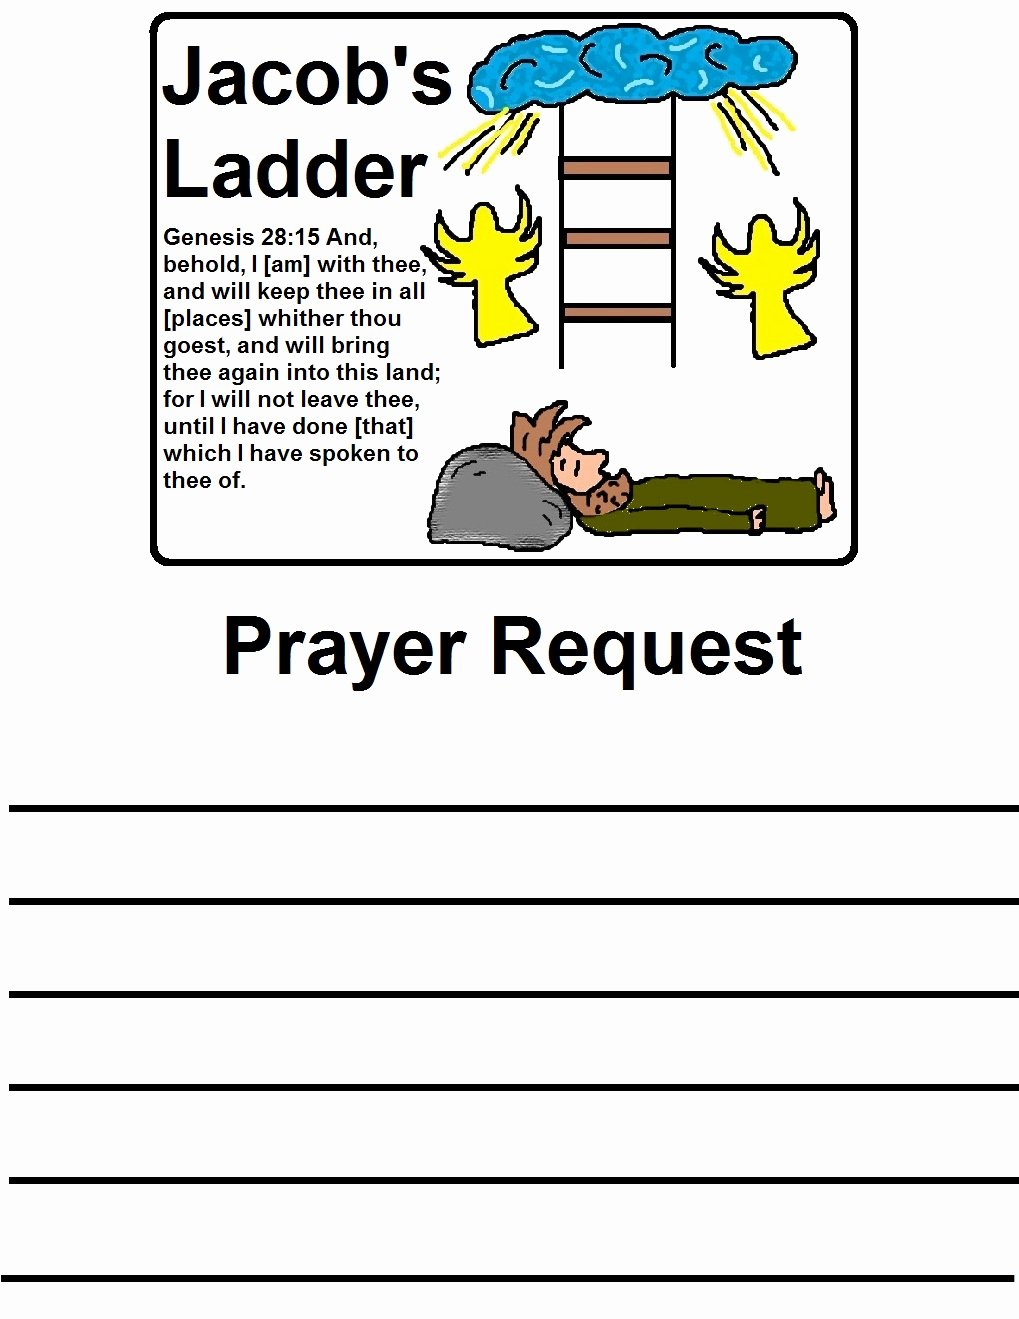 Prayer Request Cards Free Printables Awesome Jacob S Ladder Sunday School Lesson